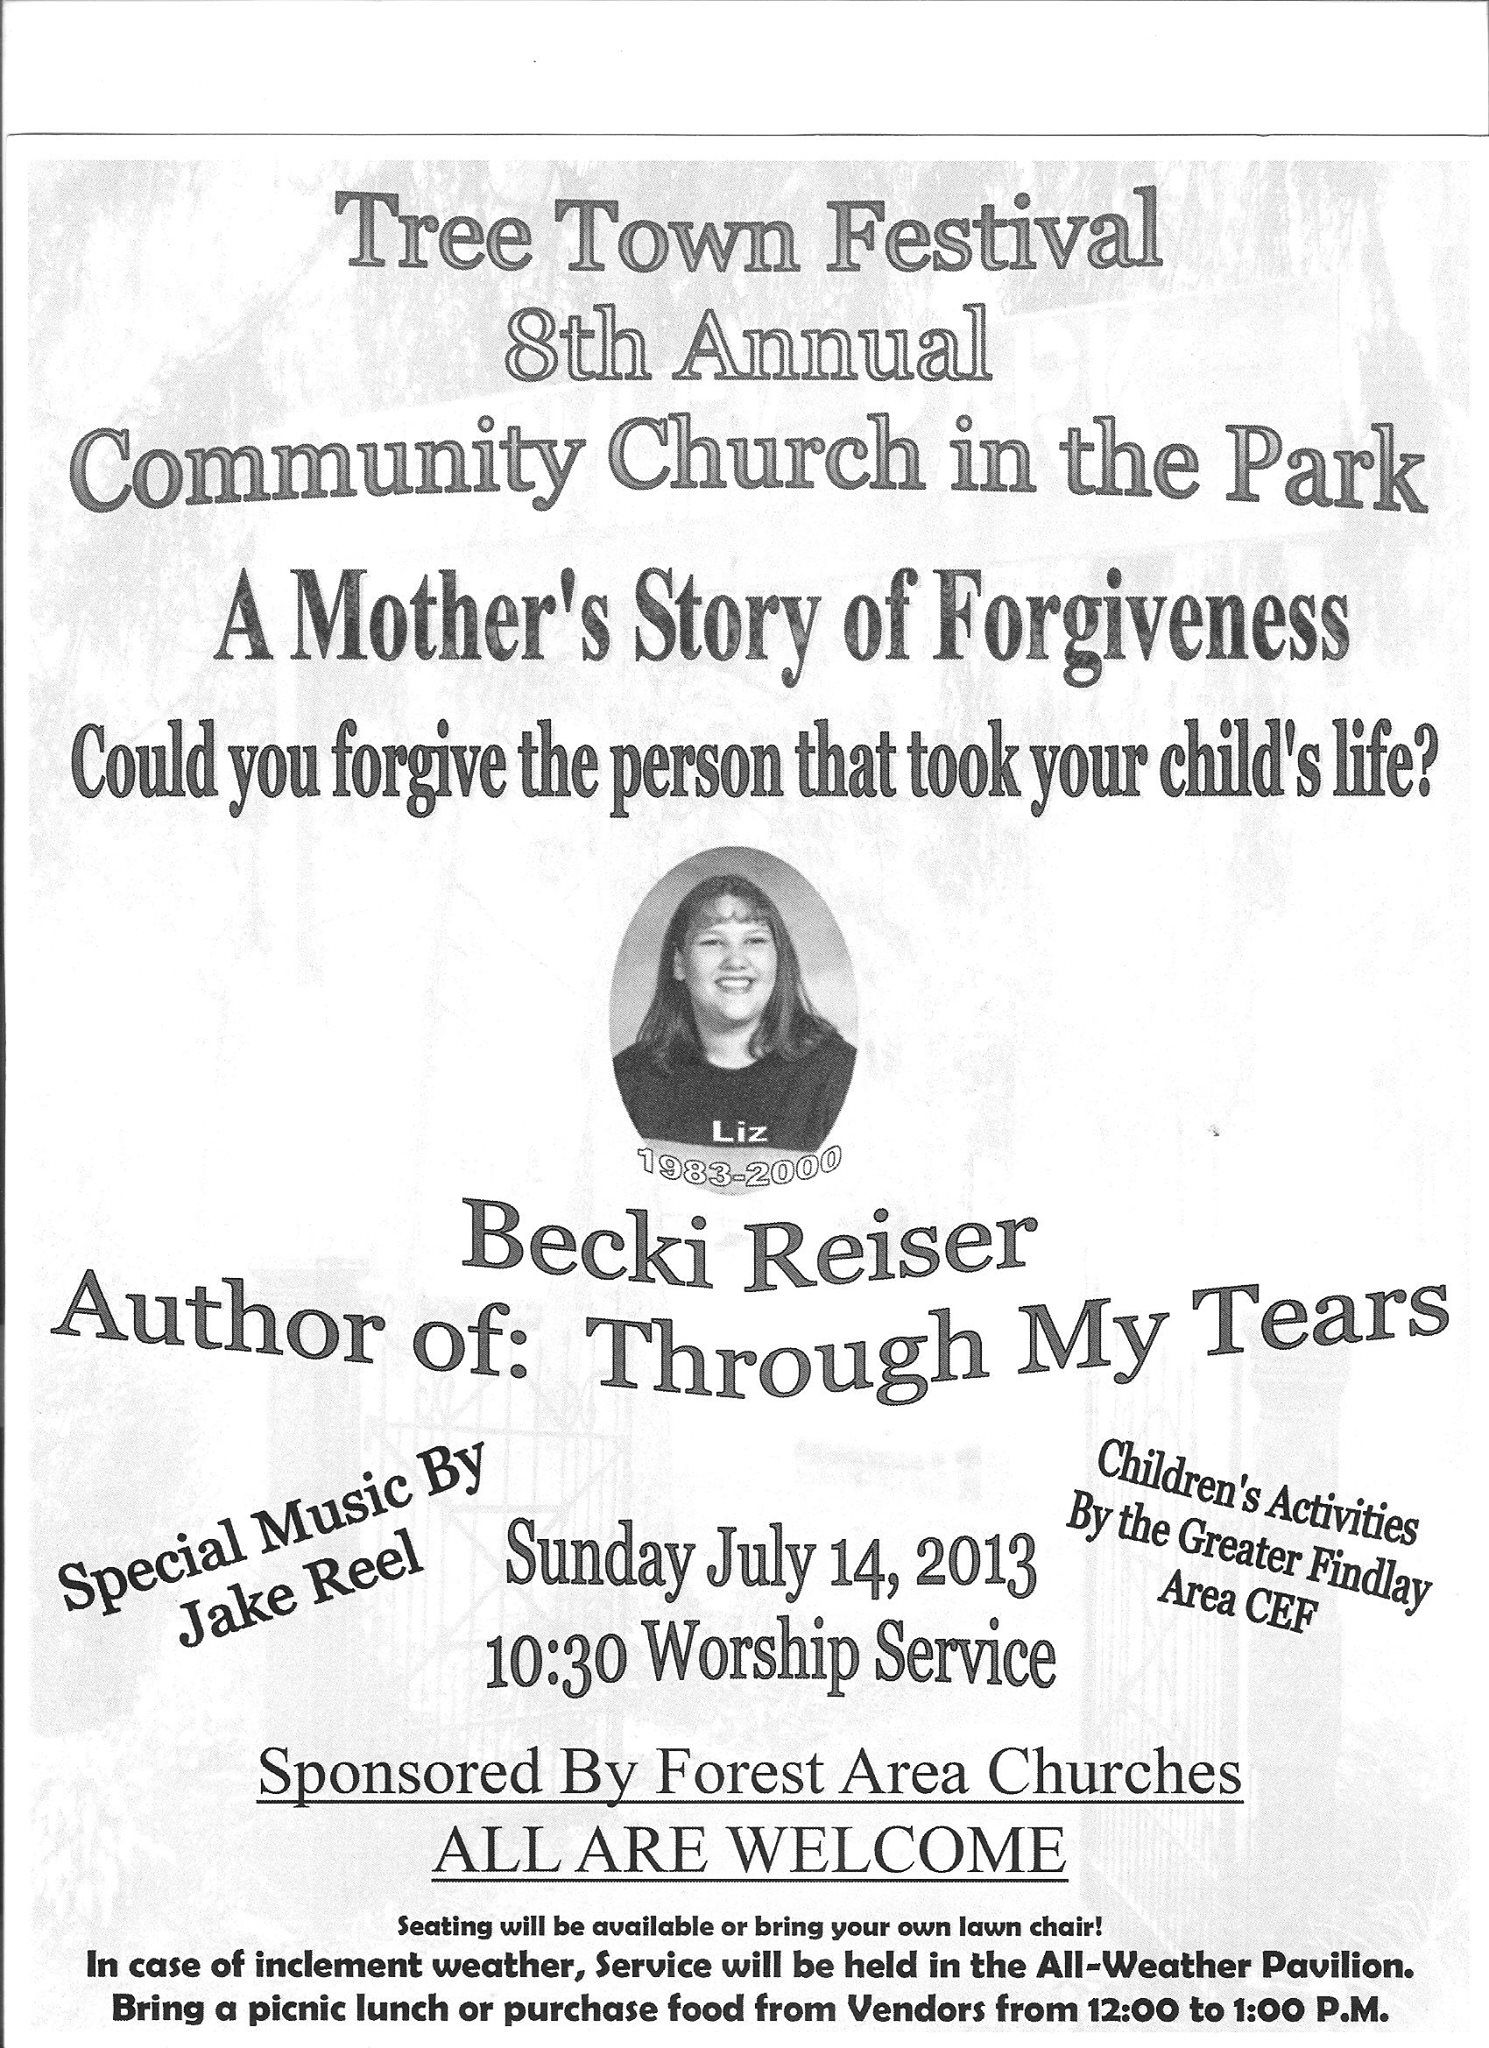 Festival this weekend, on Sunday 7/14/13 I will be sharing. Would love to see you there.